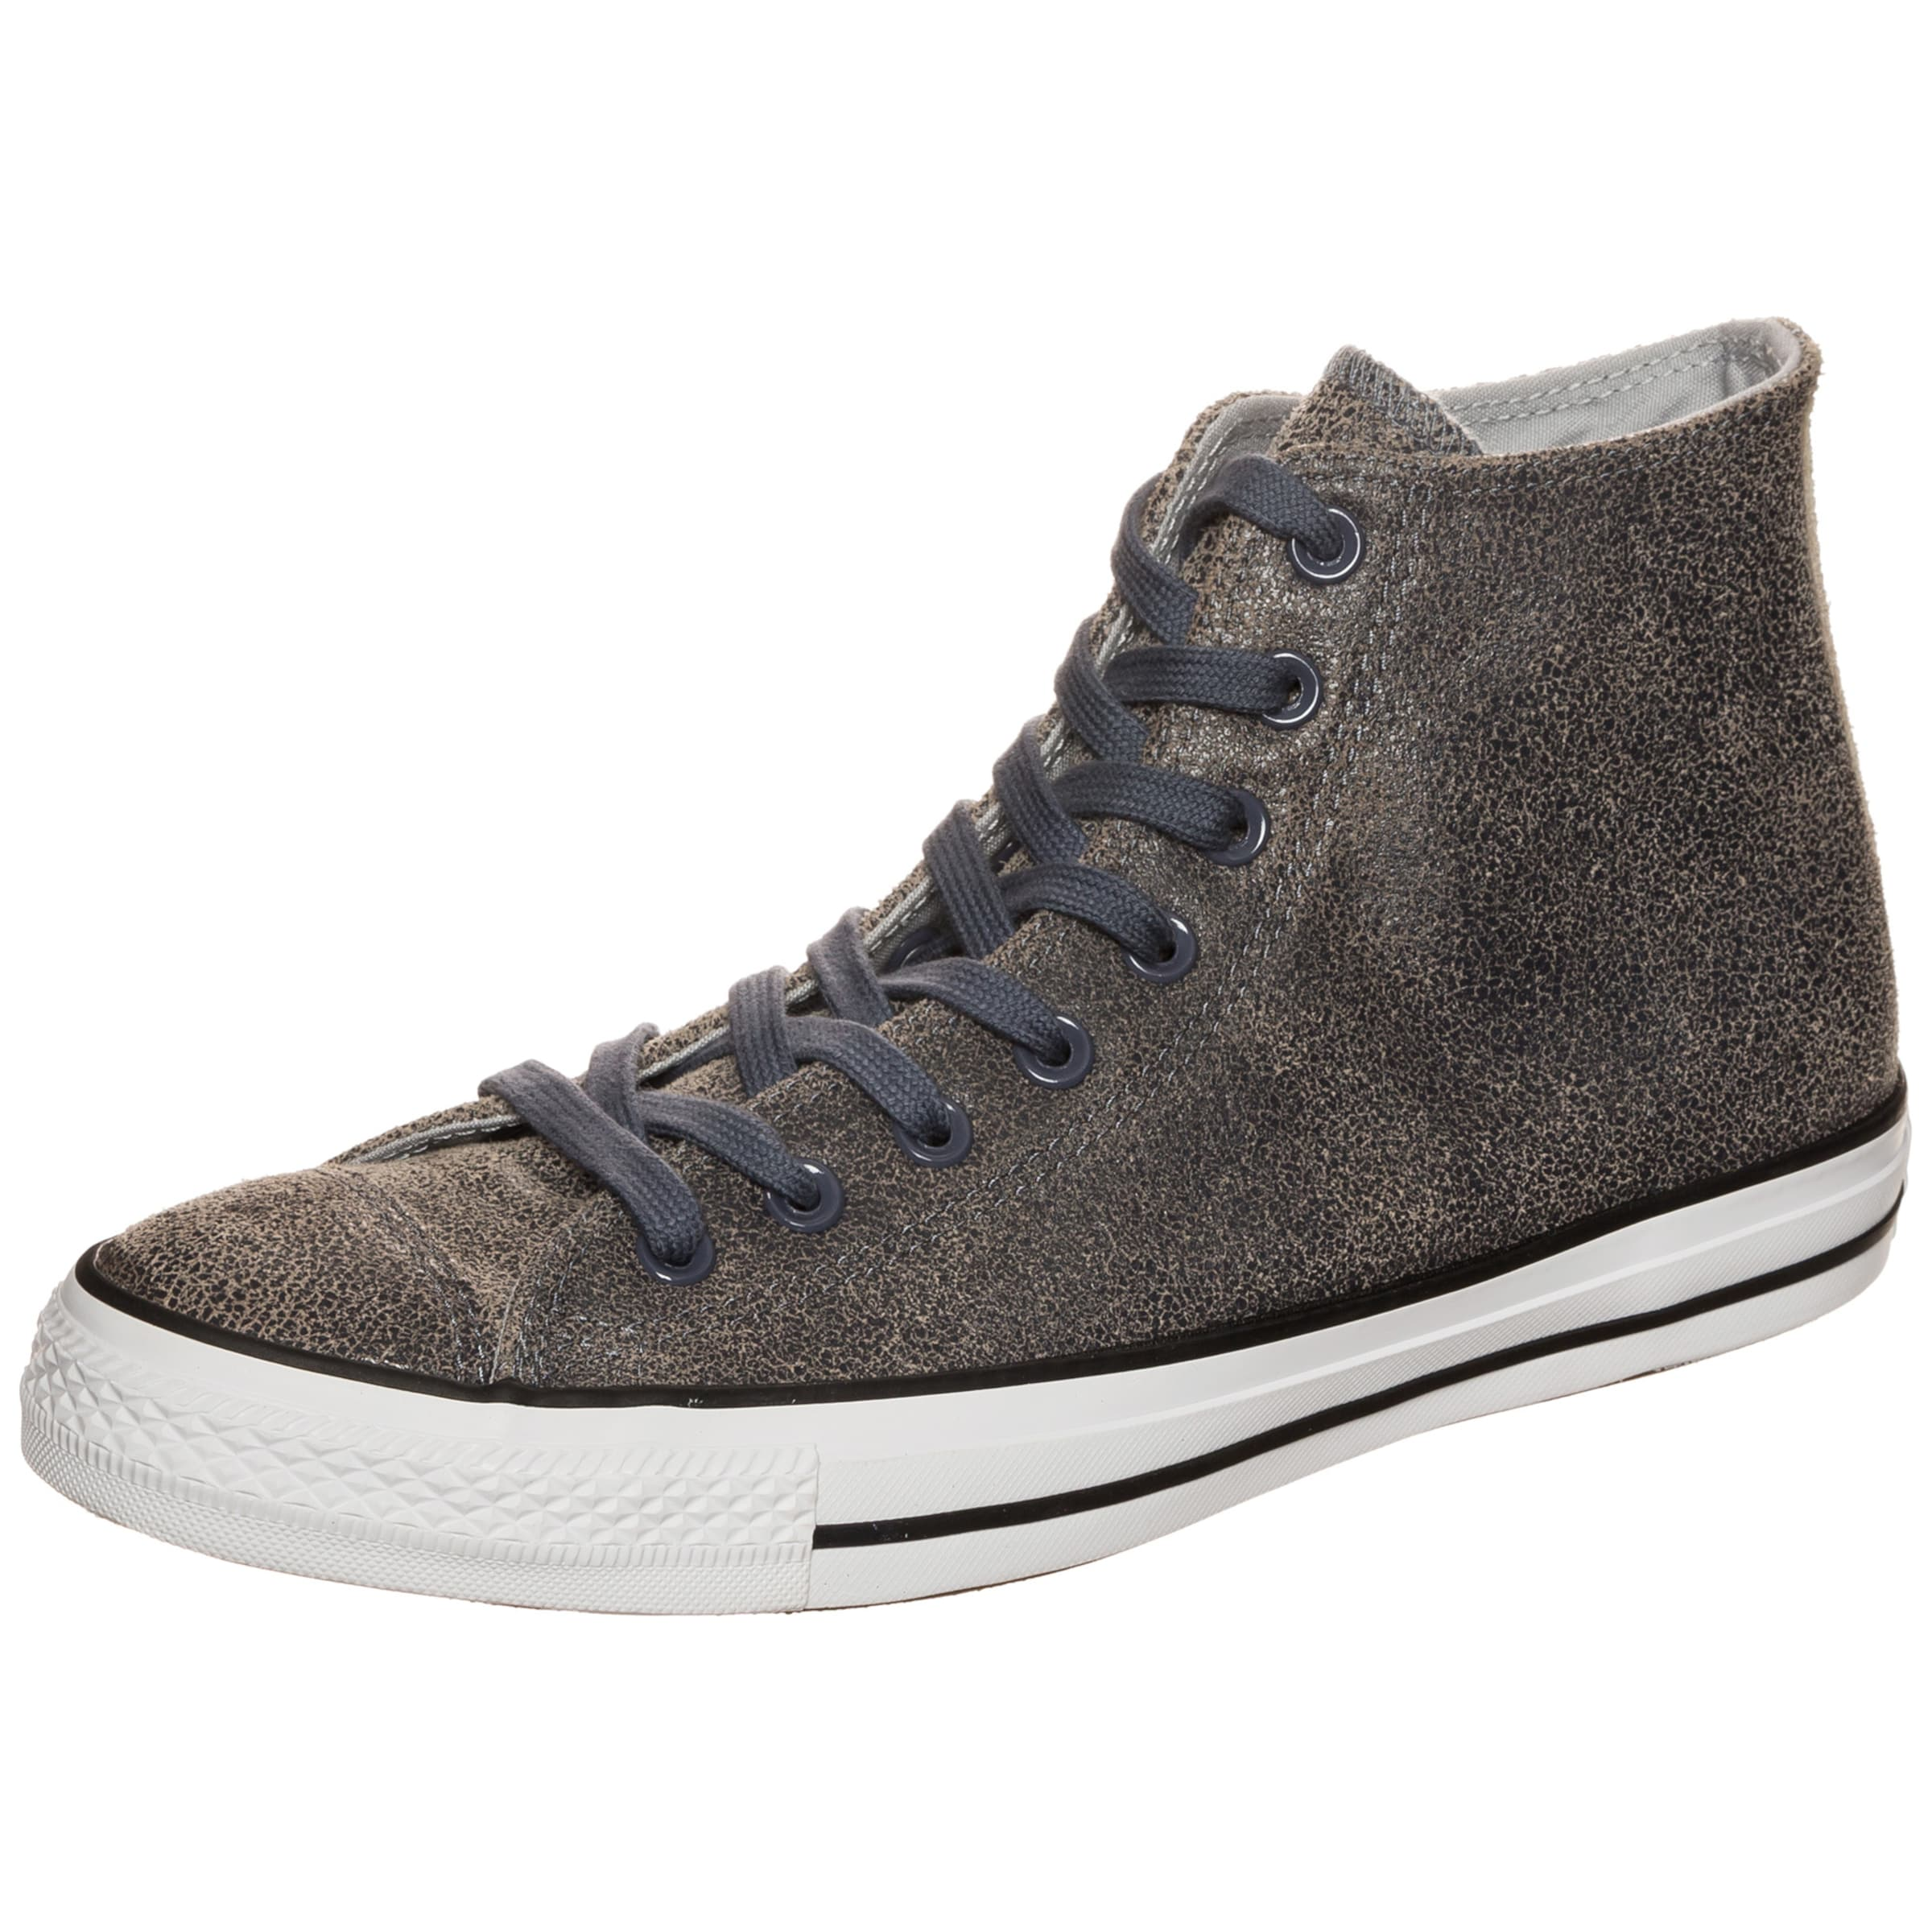 CONVERSE Chuck Taylor All Star High Sneaker Herren